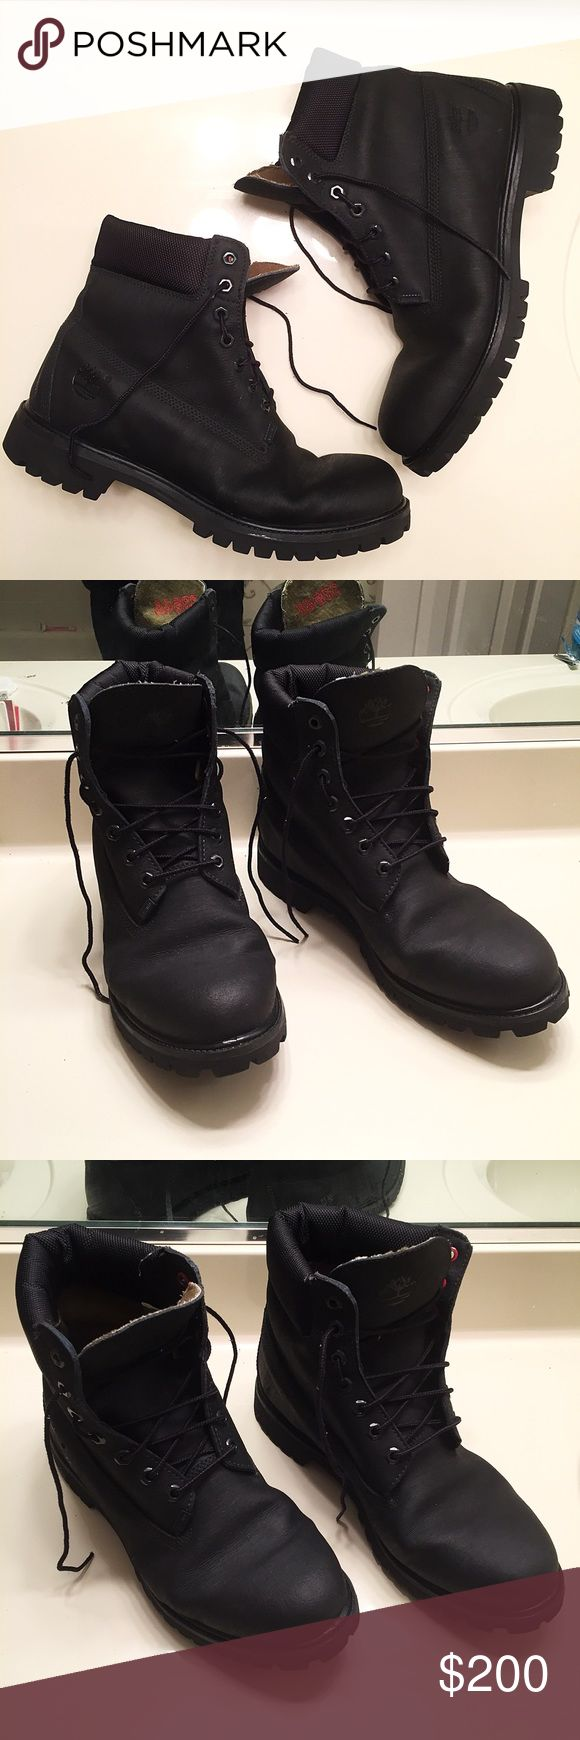 NEW men's black leather Timberland boots size 11 Brand new and never worn (NWOT). Men's black genuine leather Timberland boots size 11 Timberland Shoes Boots